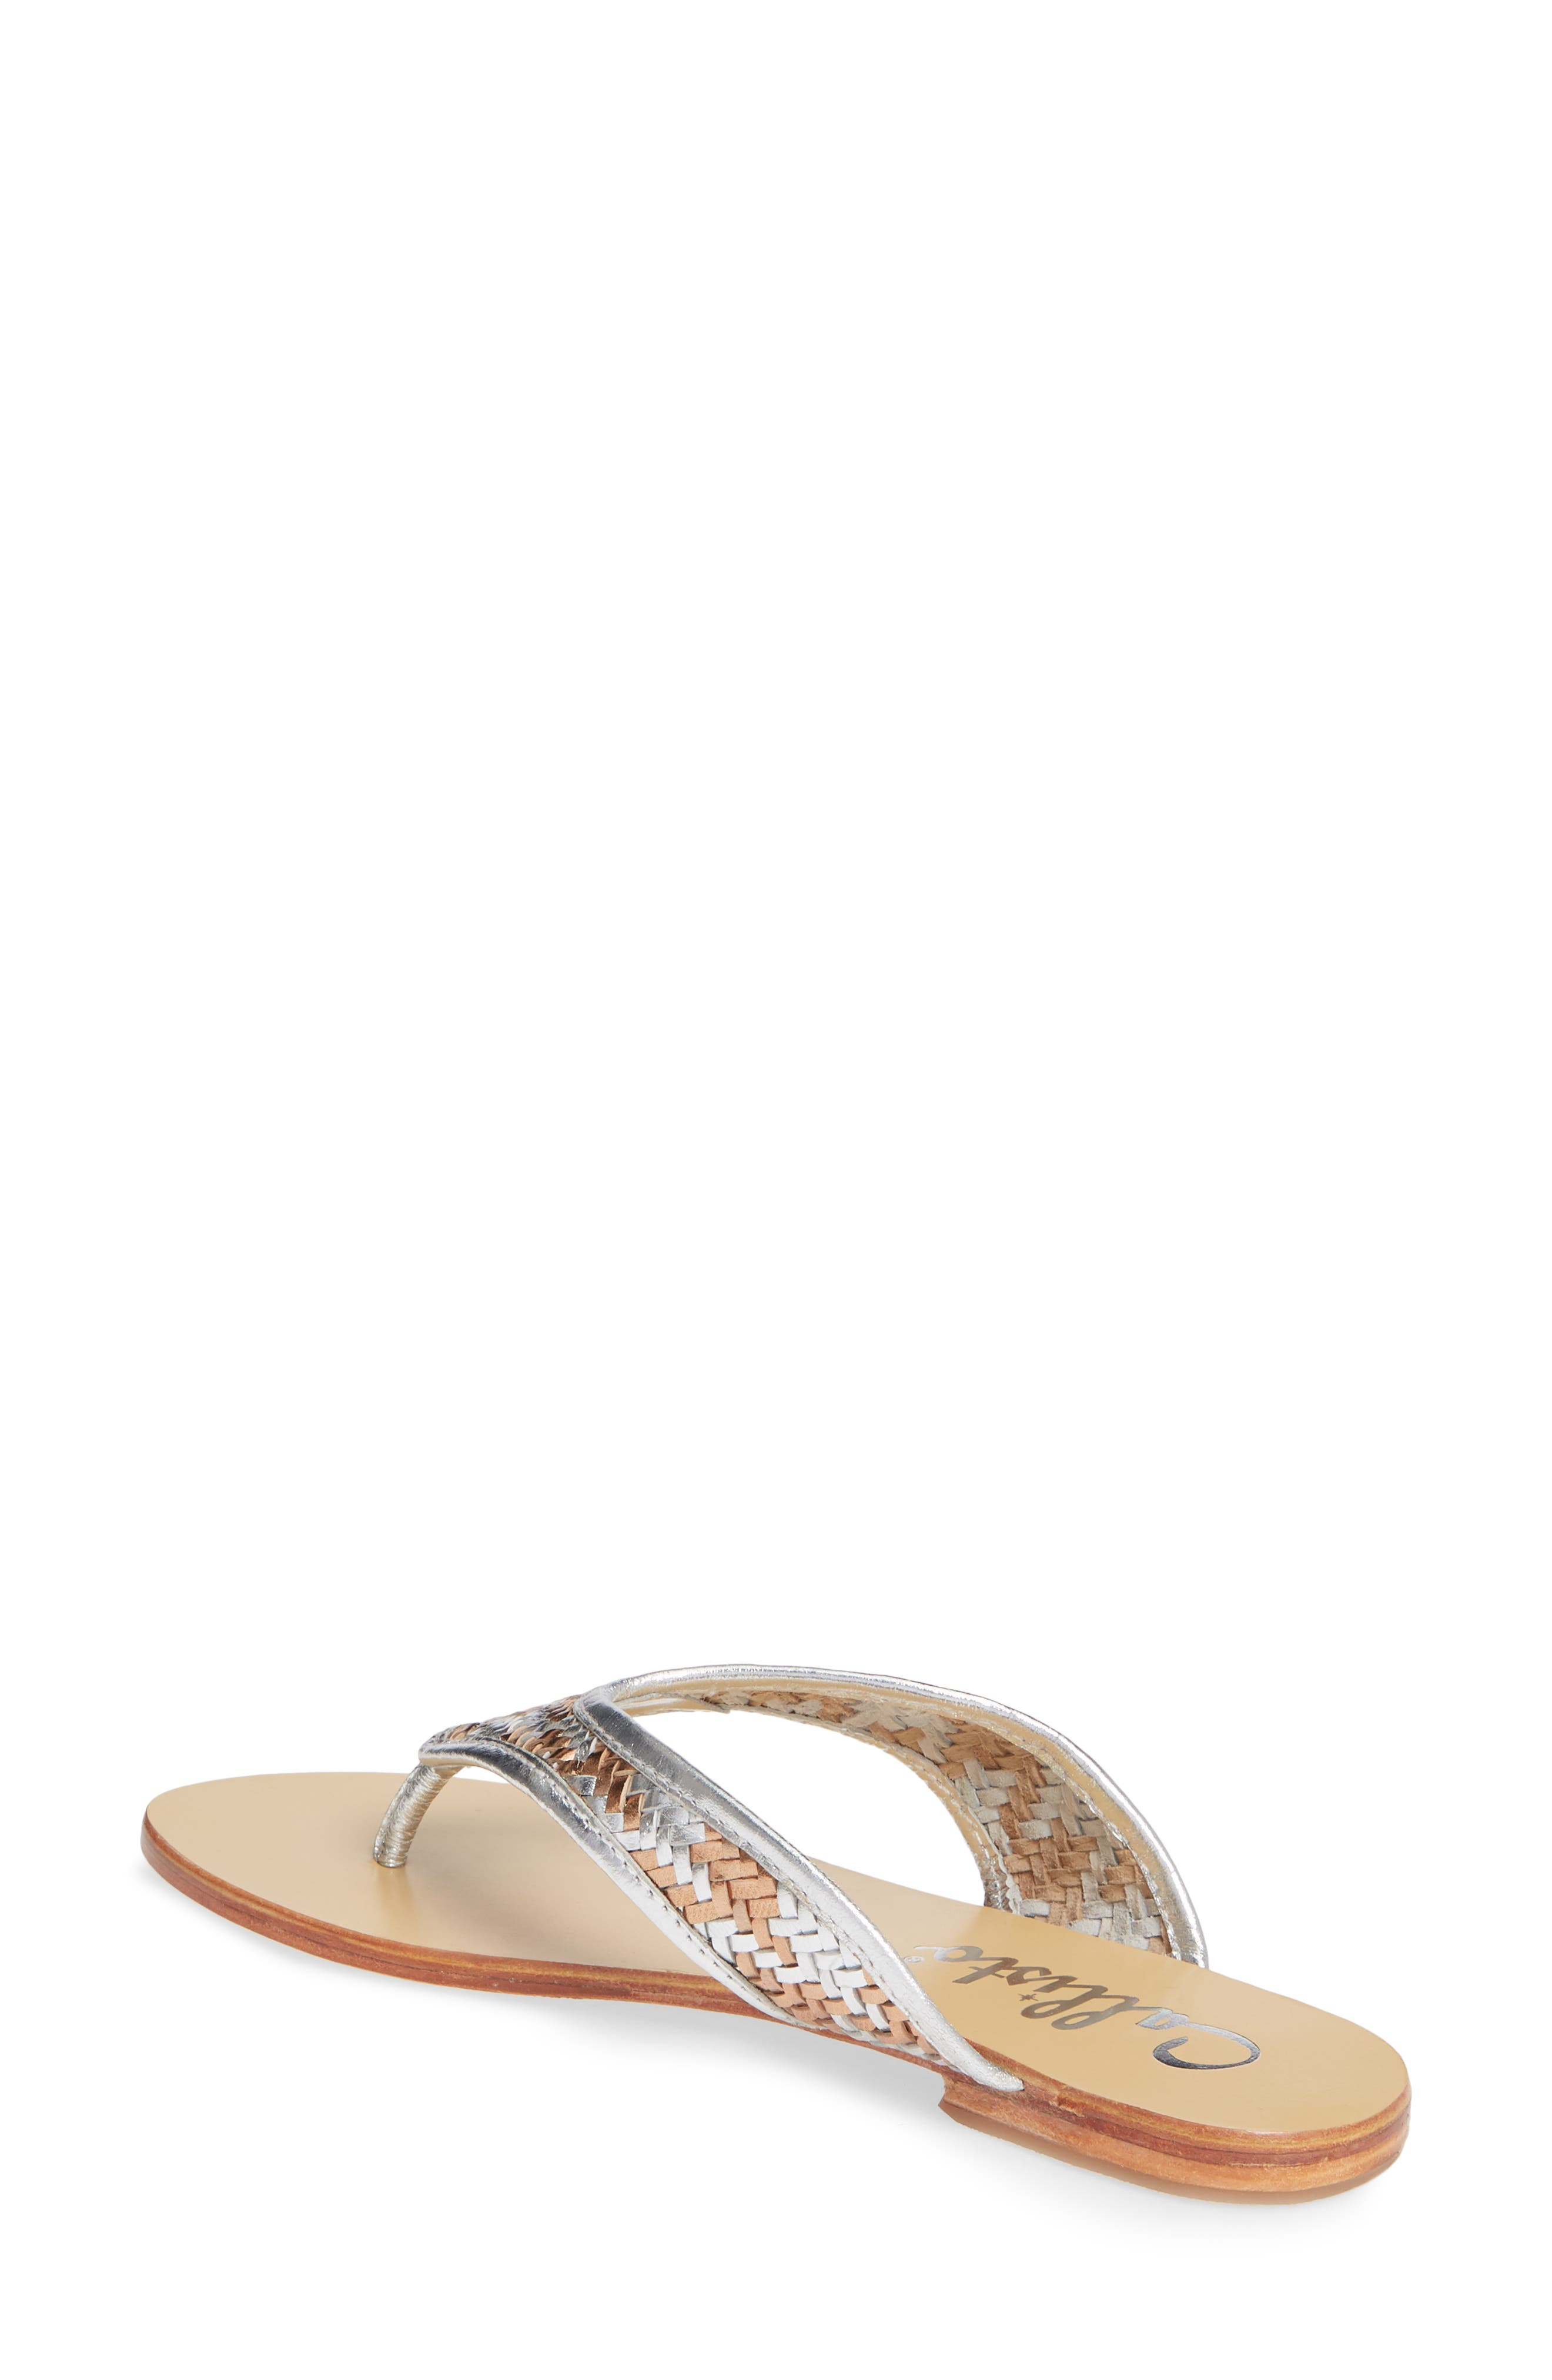 Thunder Woven Flip Flop,                             Alternate thumbnail 2, color,                             SILVER GOLD WOVEN LEATHER